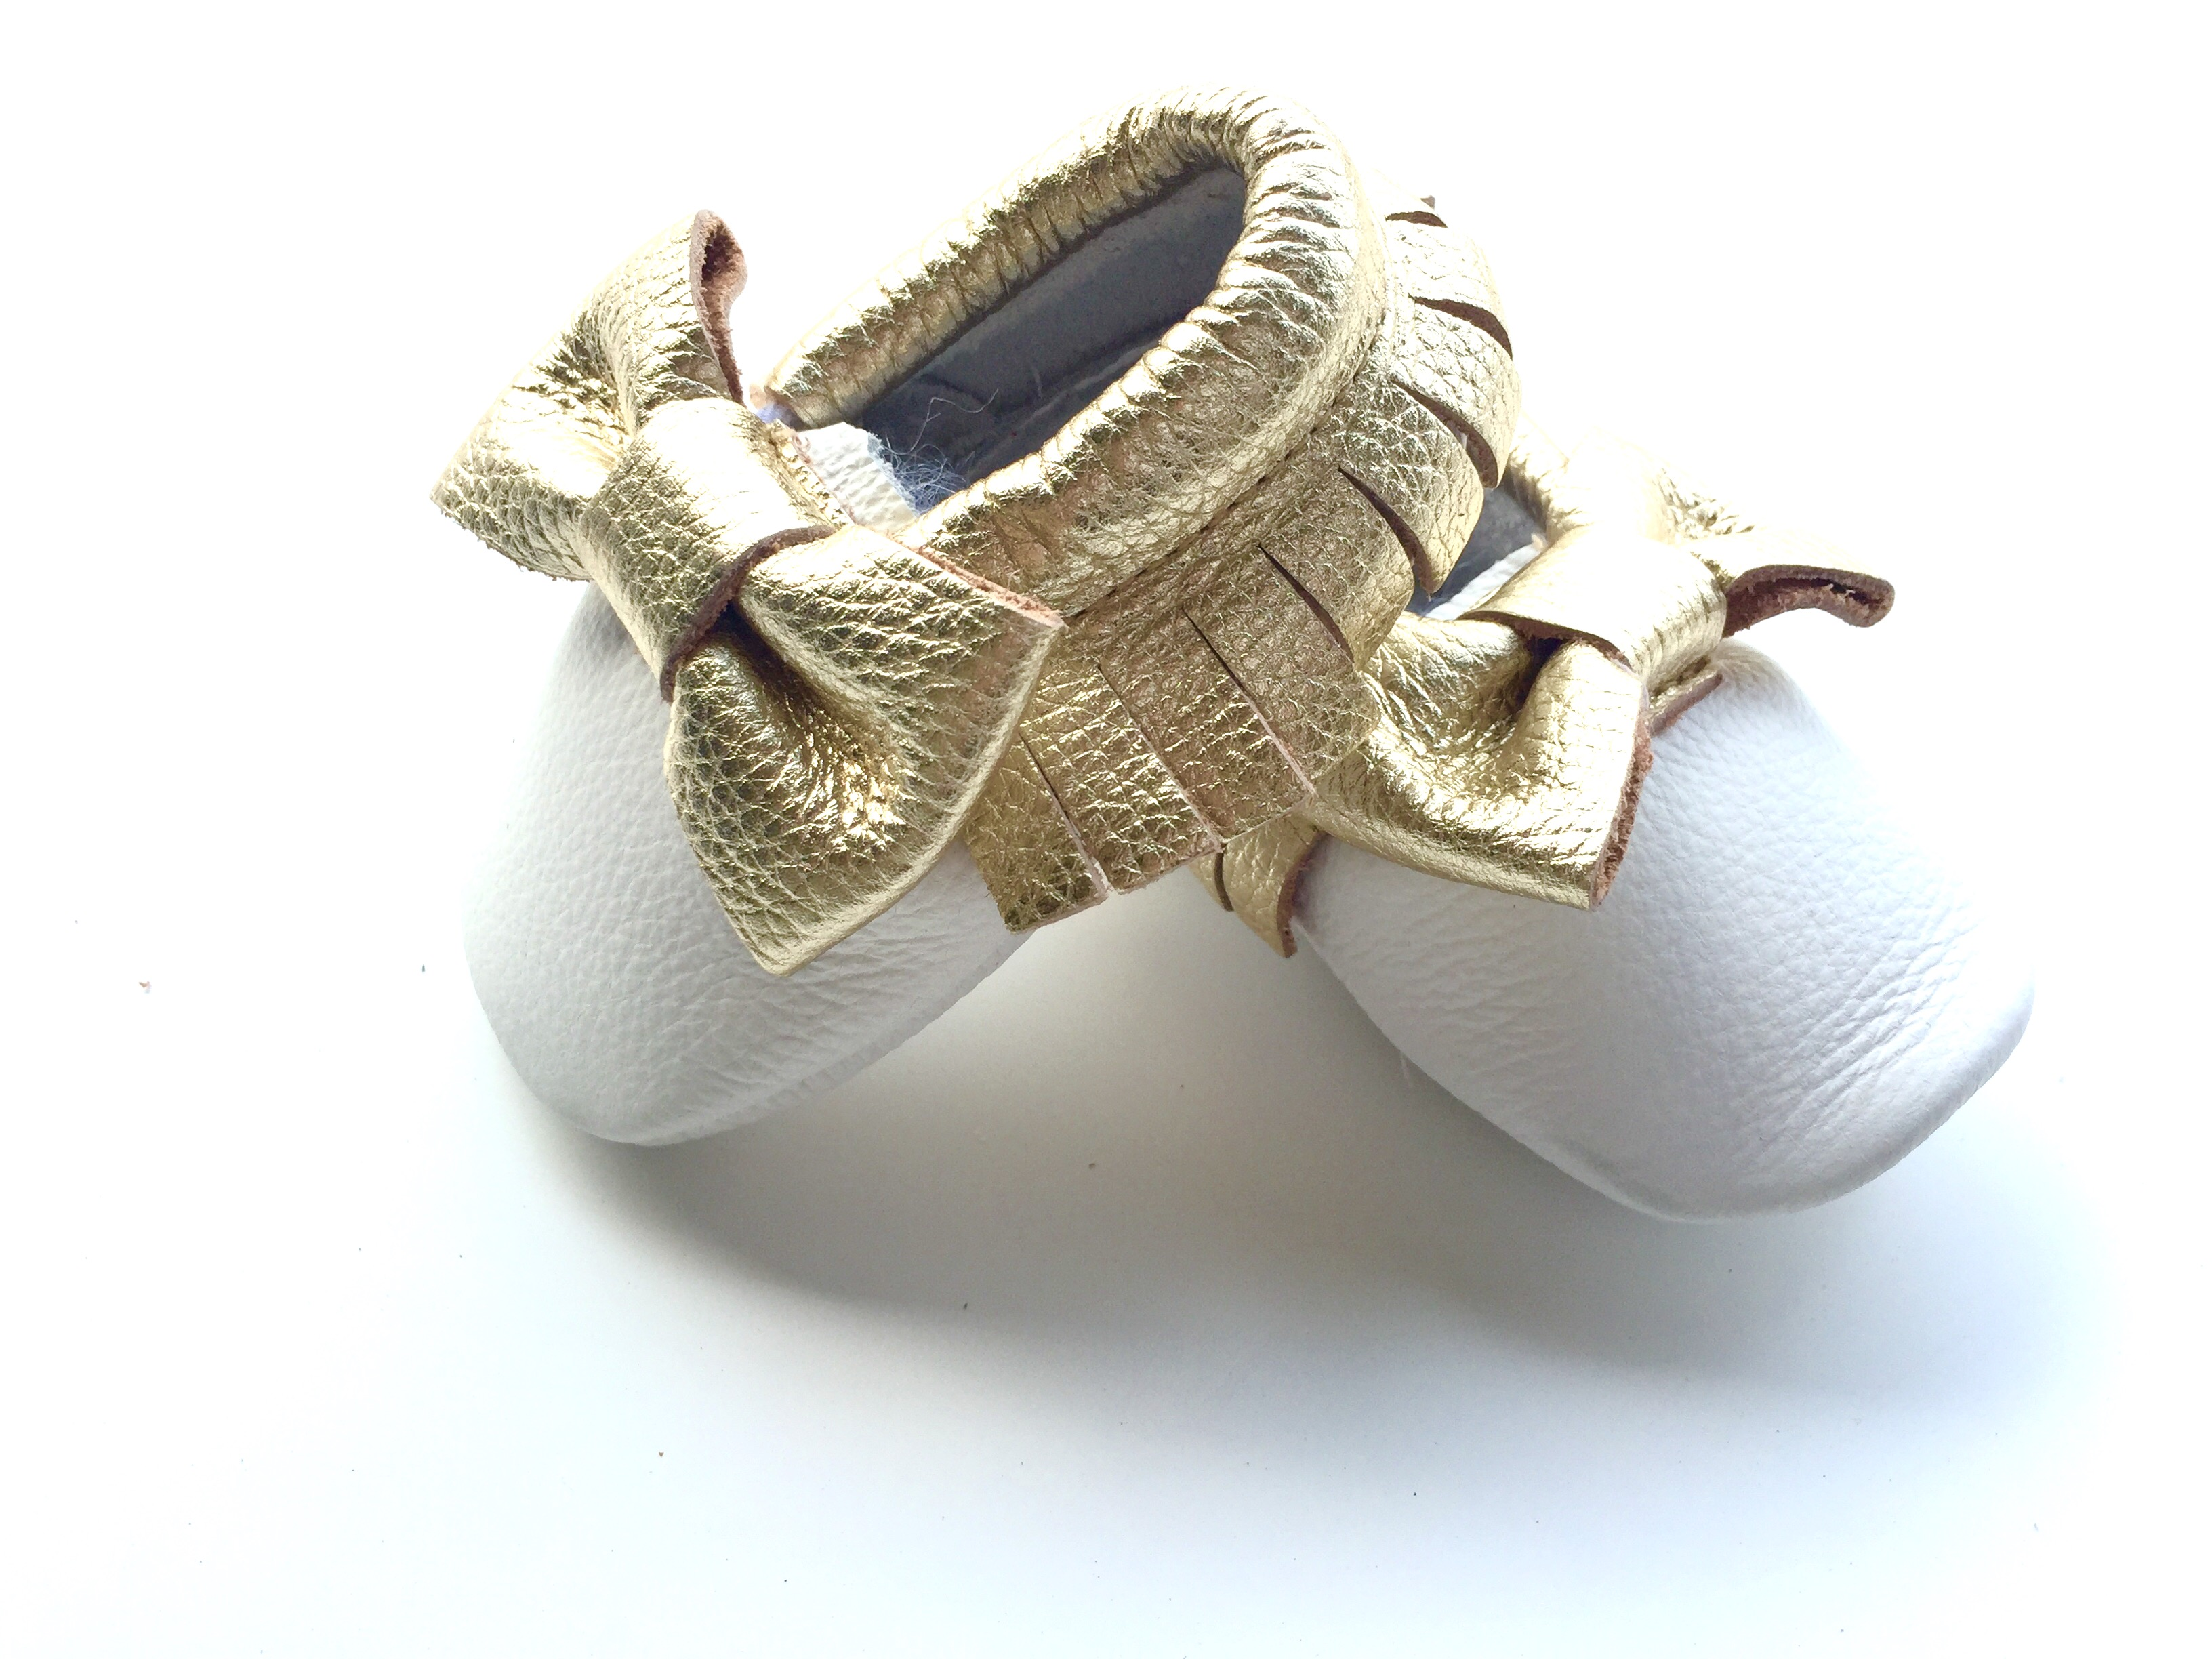 e085af306860d Baby Moccasins - White and Gold Leather with Bow from Blush + Willow